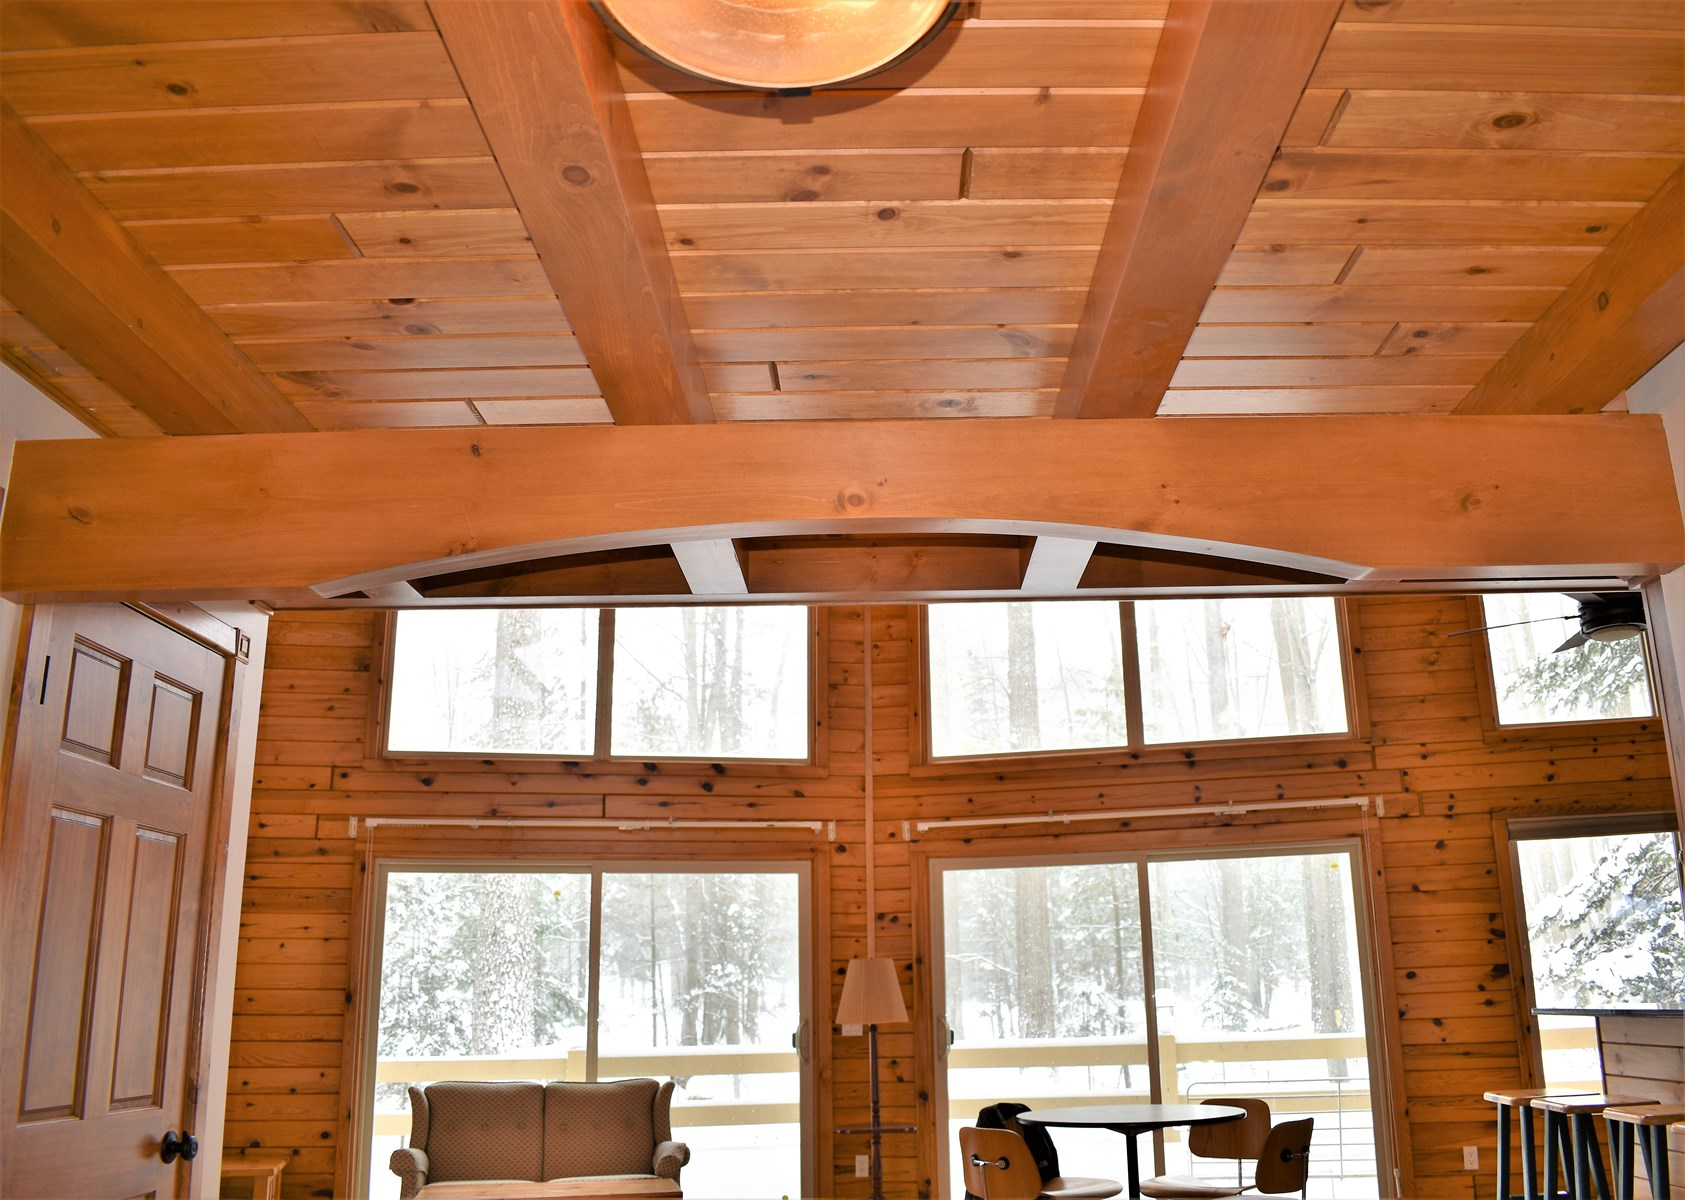 Foyer Ceiling Beams & View to Great Room